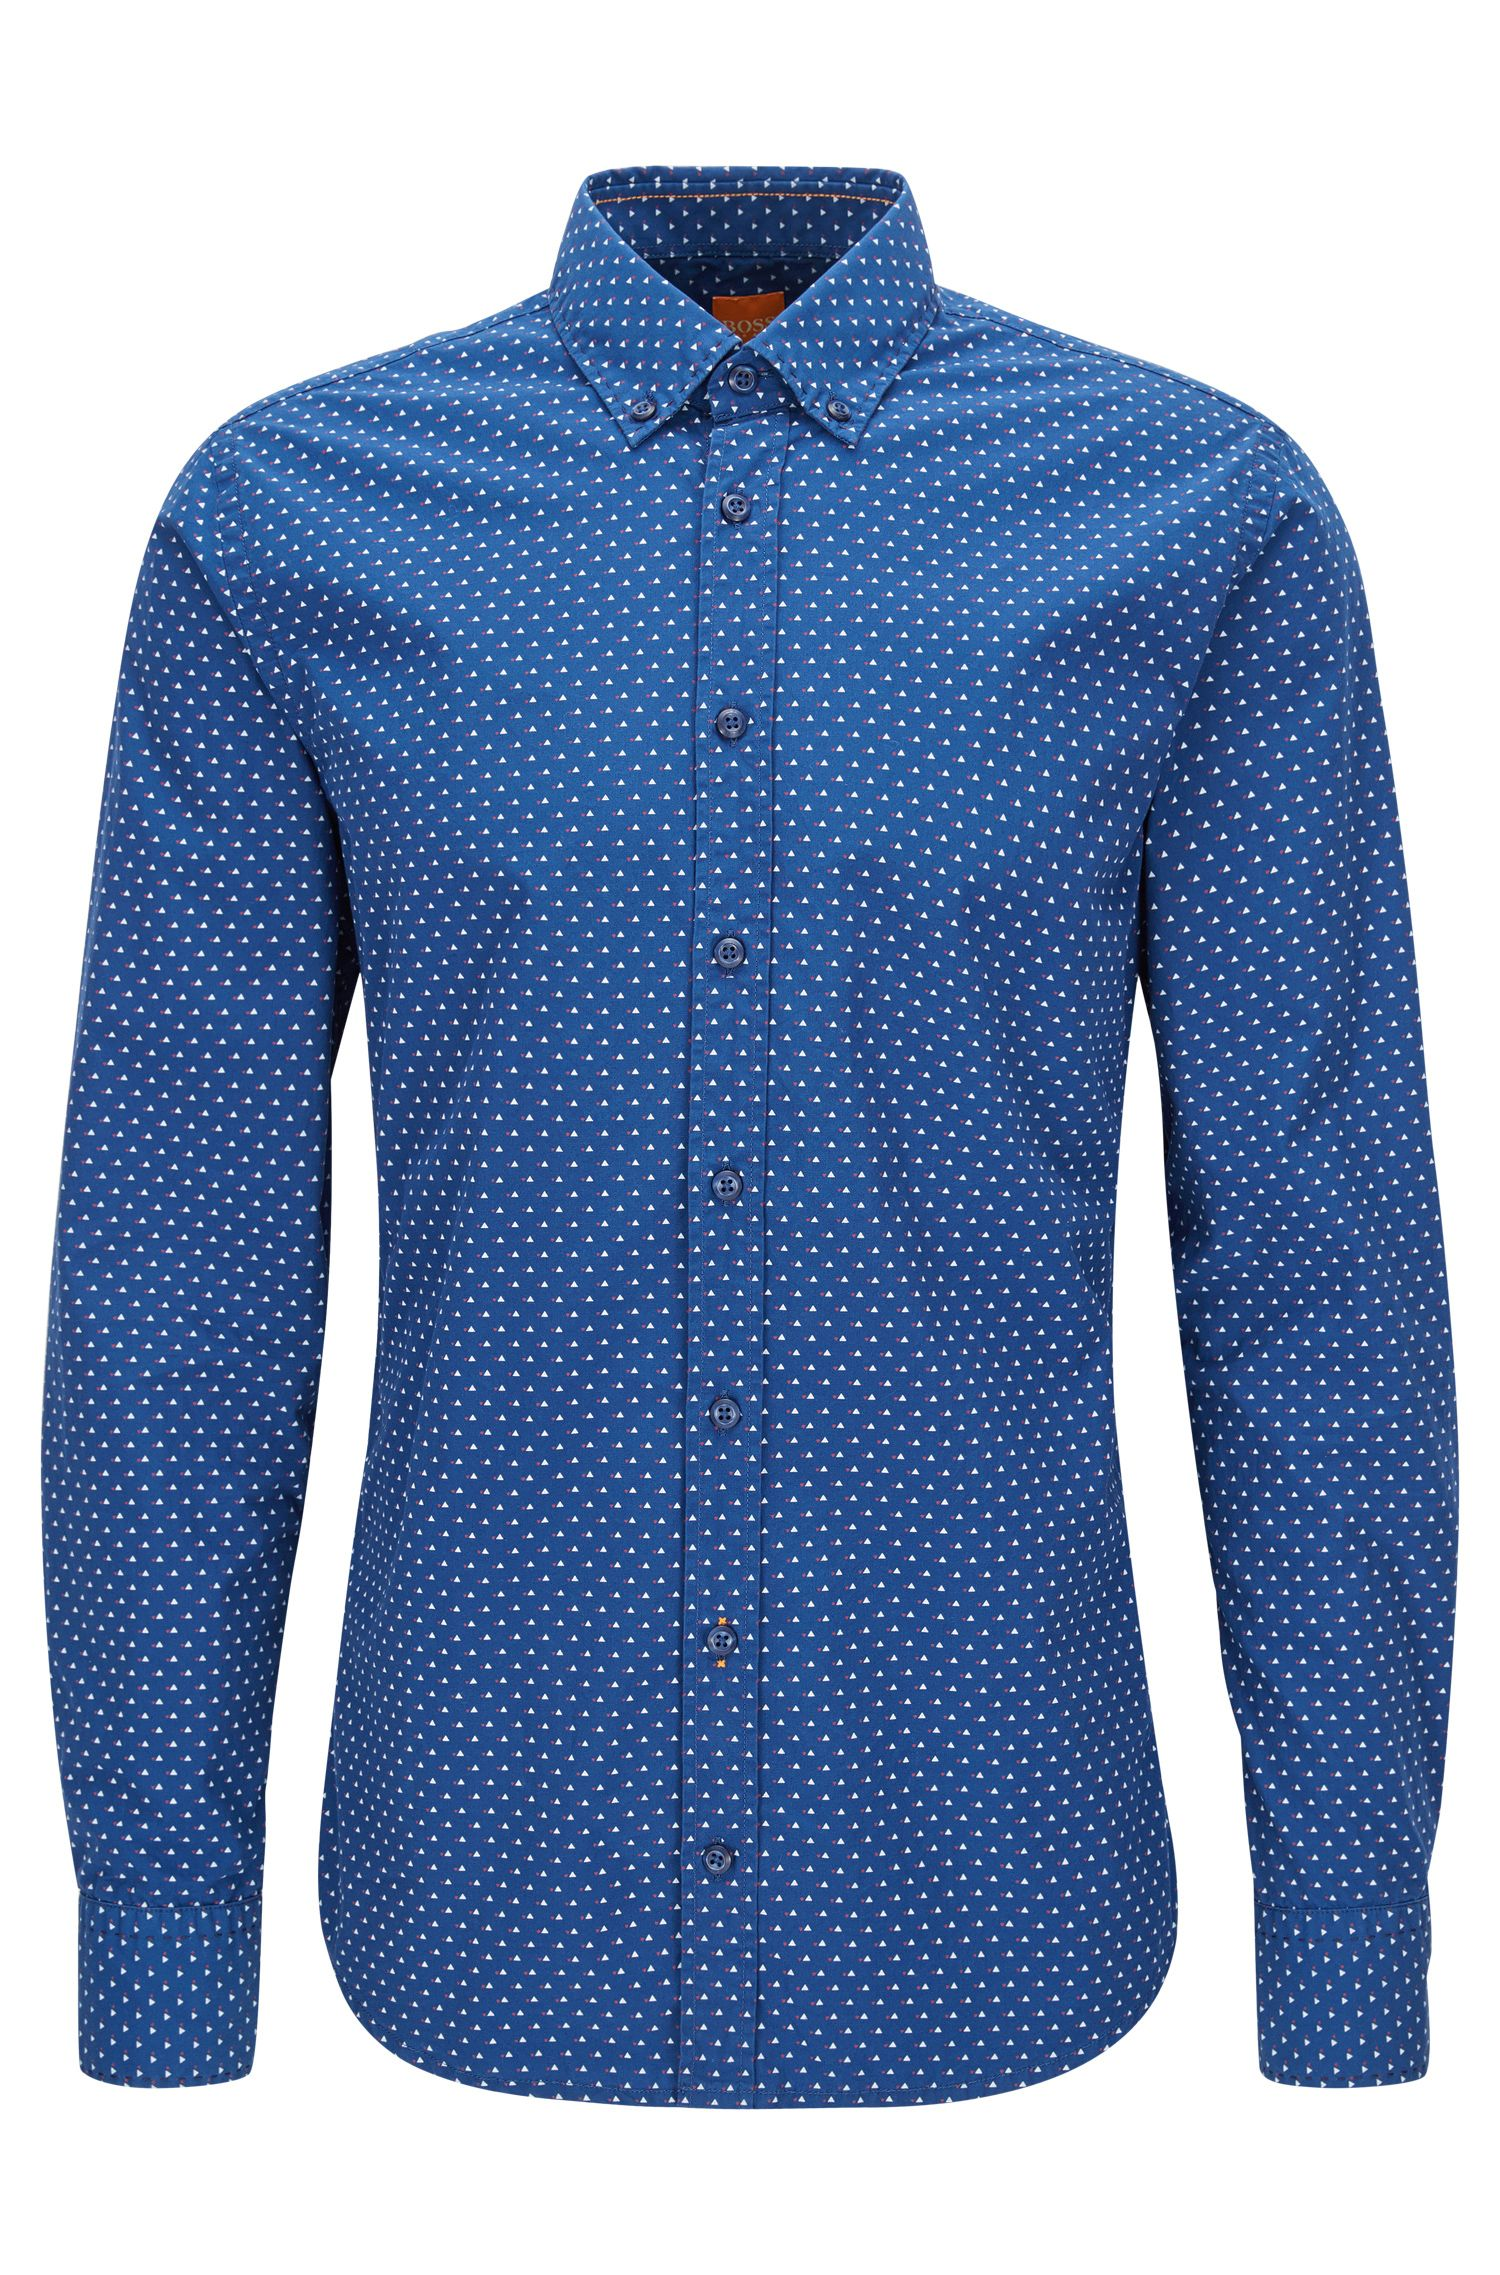 Slim Fit, Geometric Cotton Button Down Shirt, Slim Fit | Epreppy